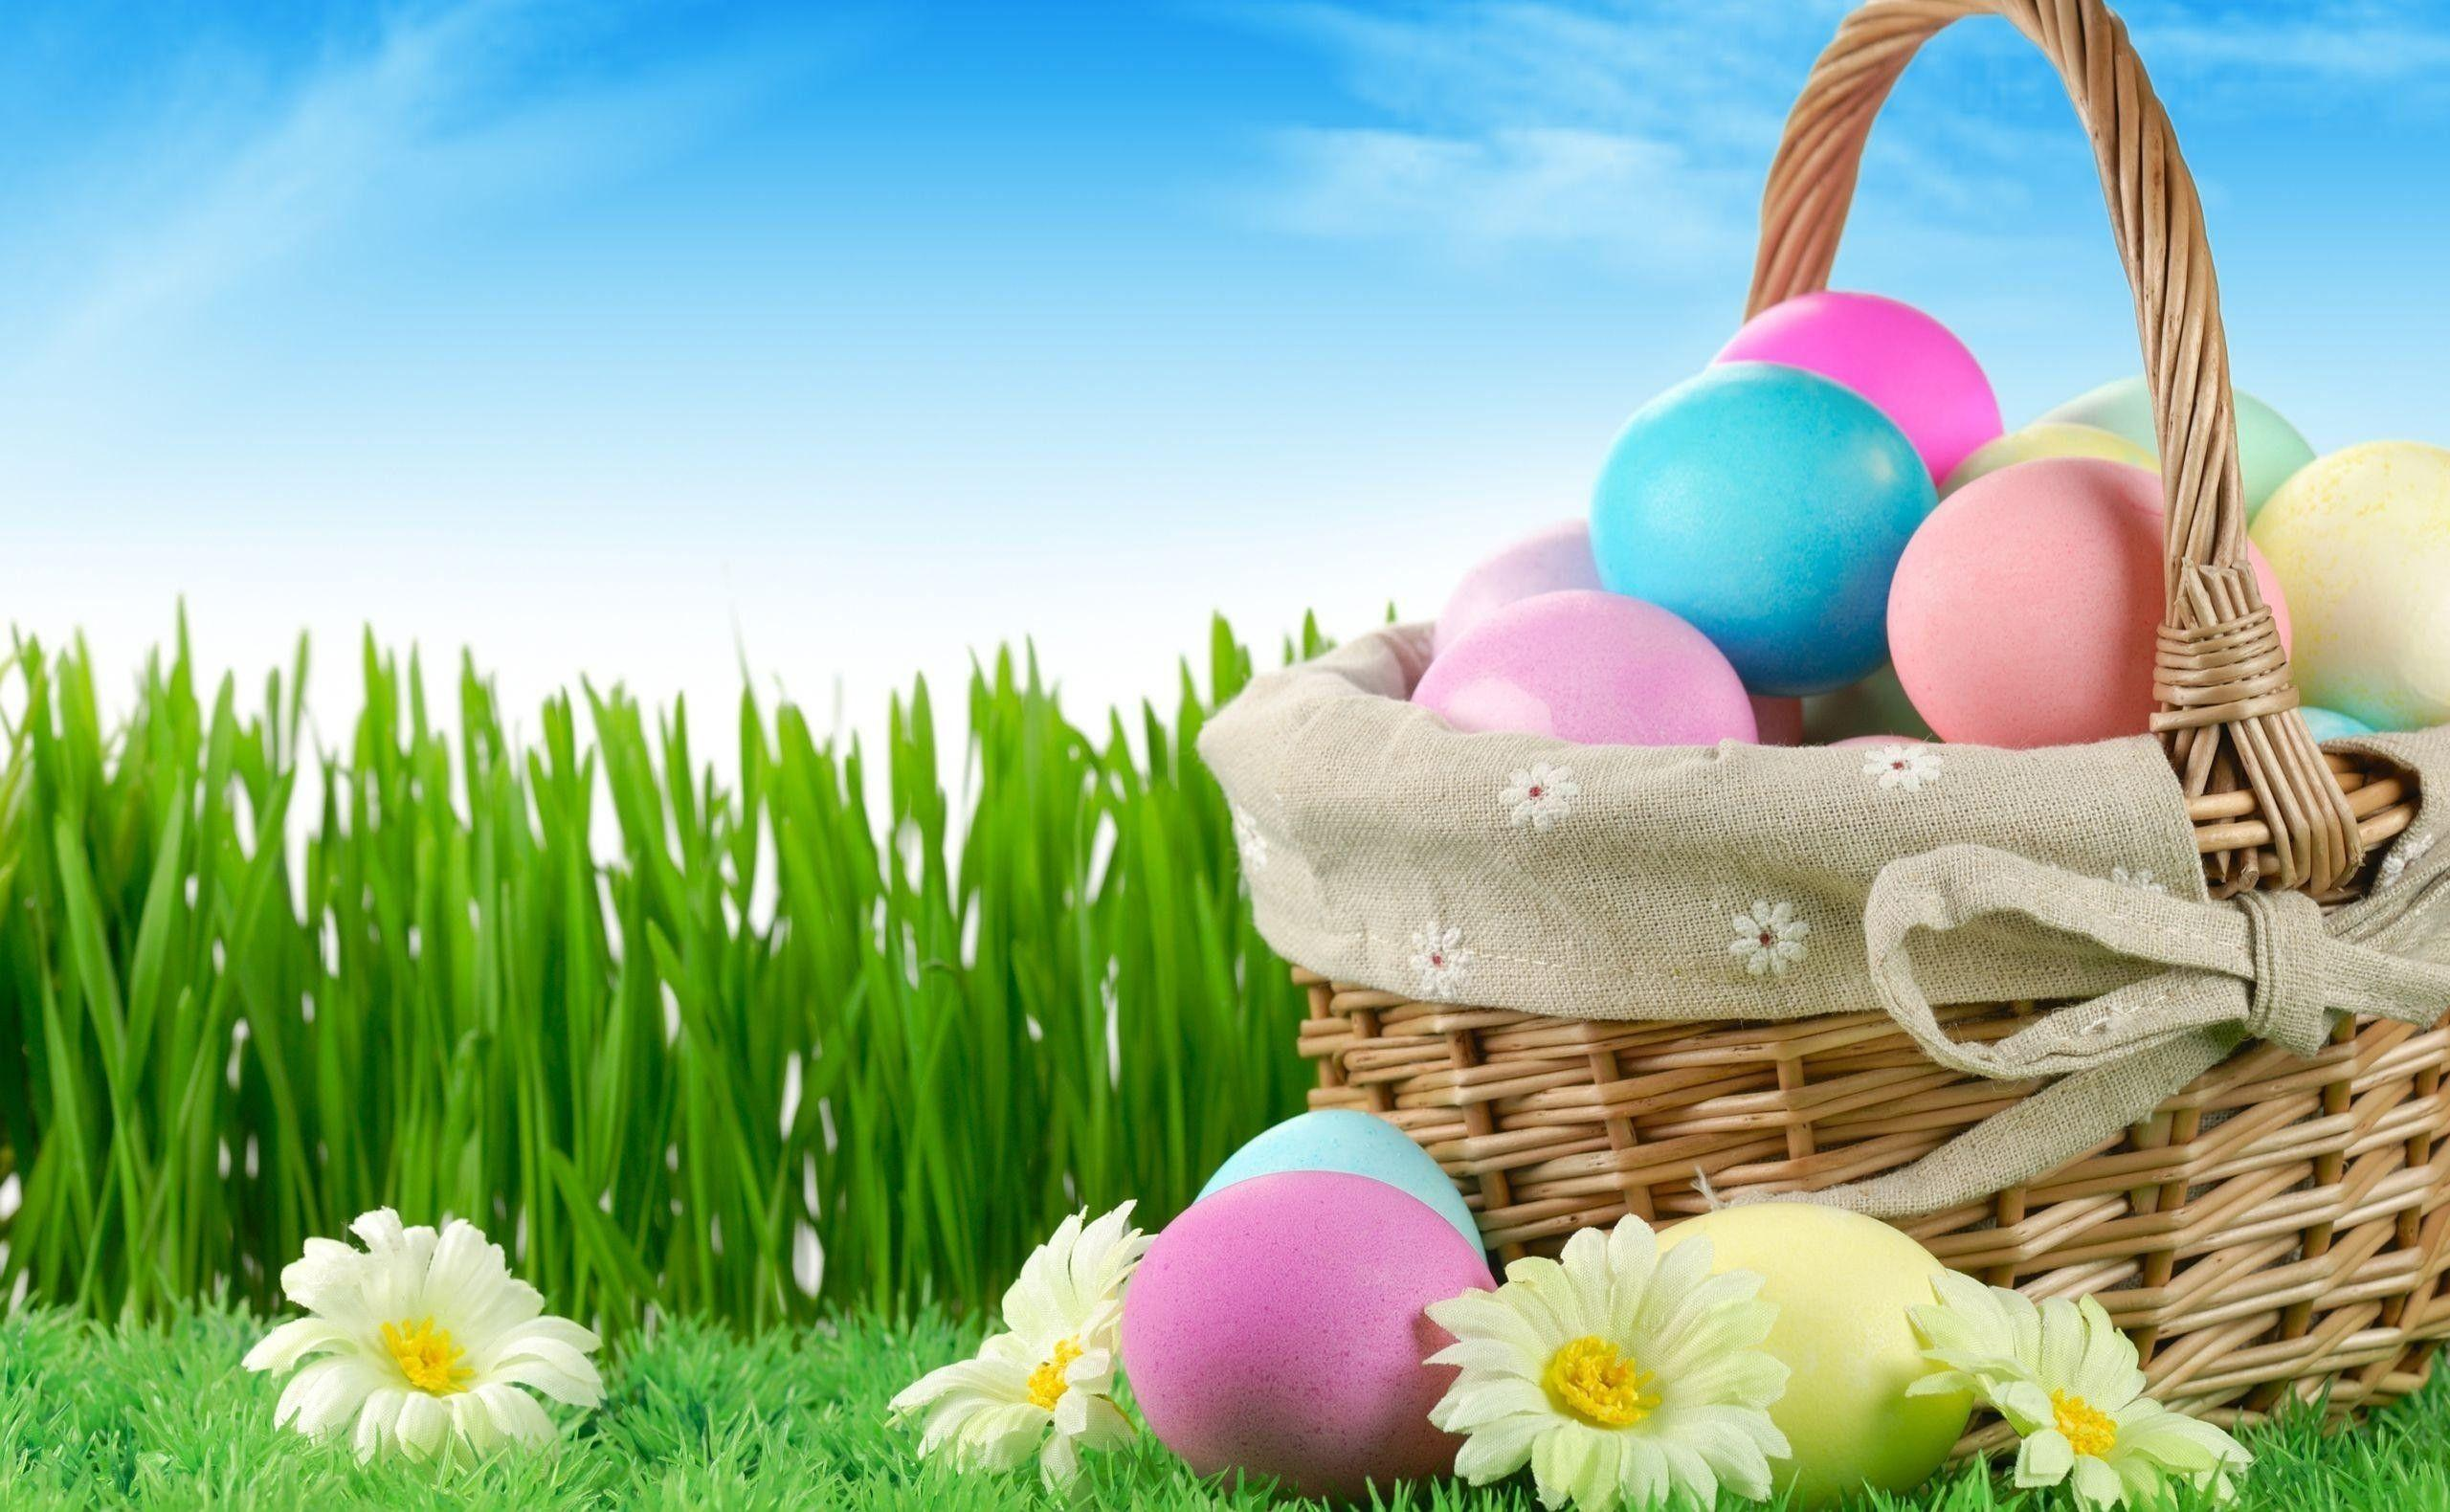 Easter Egg Backgrounds 2560x1580